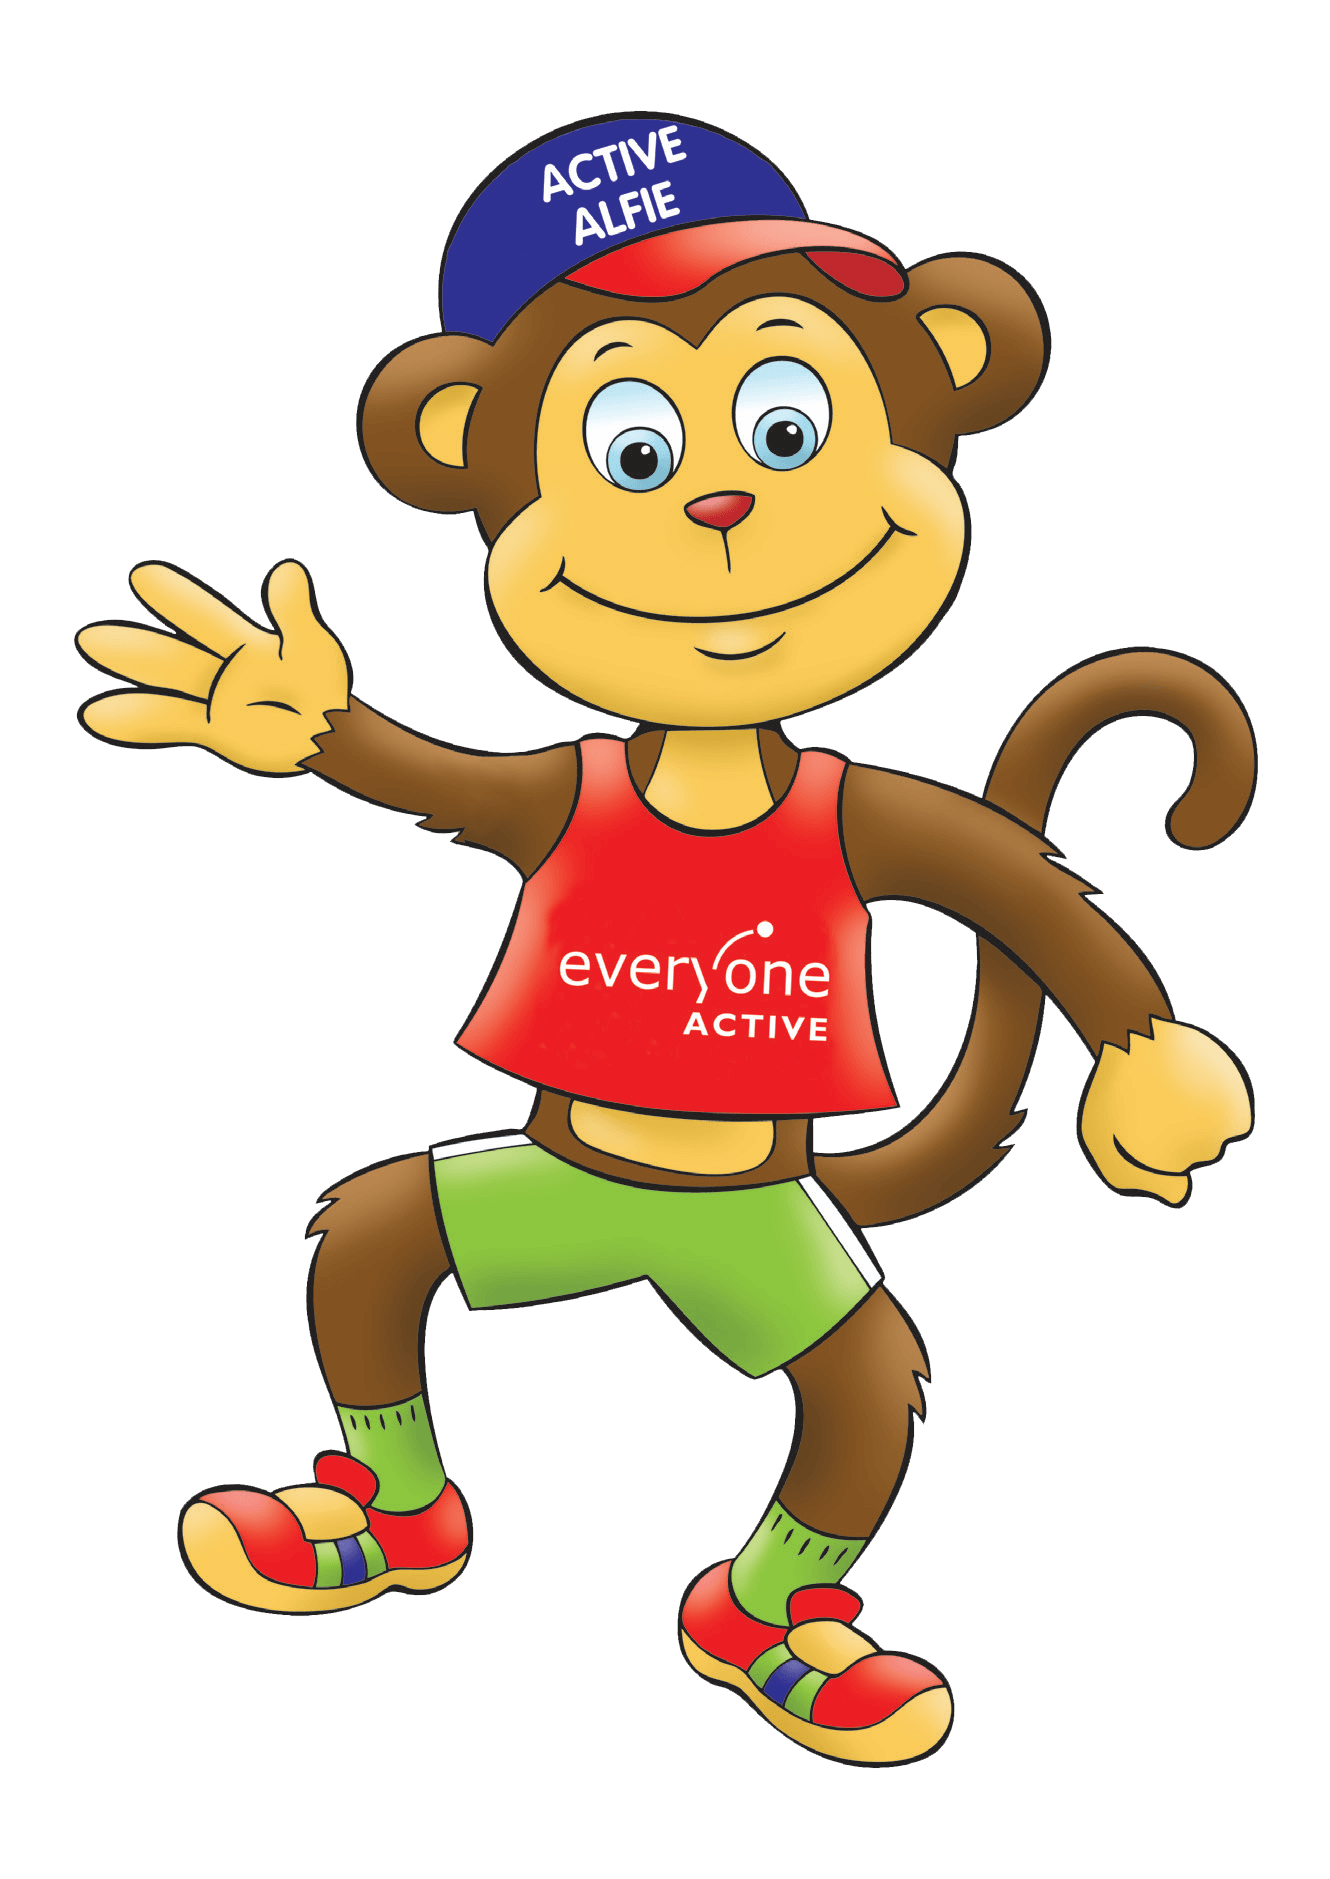 Active Alftie the soft play monkey at Jolly Jungle